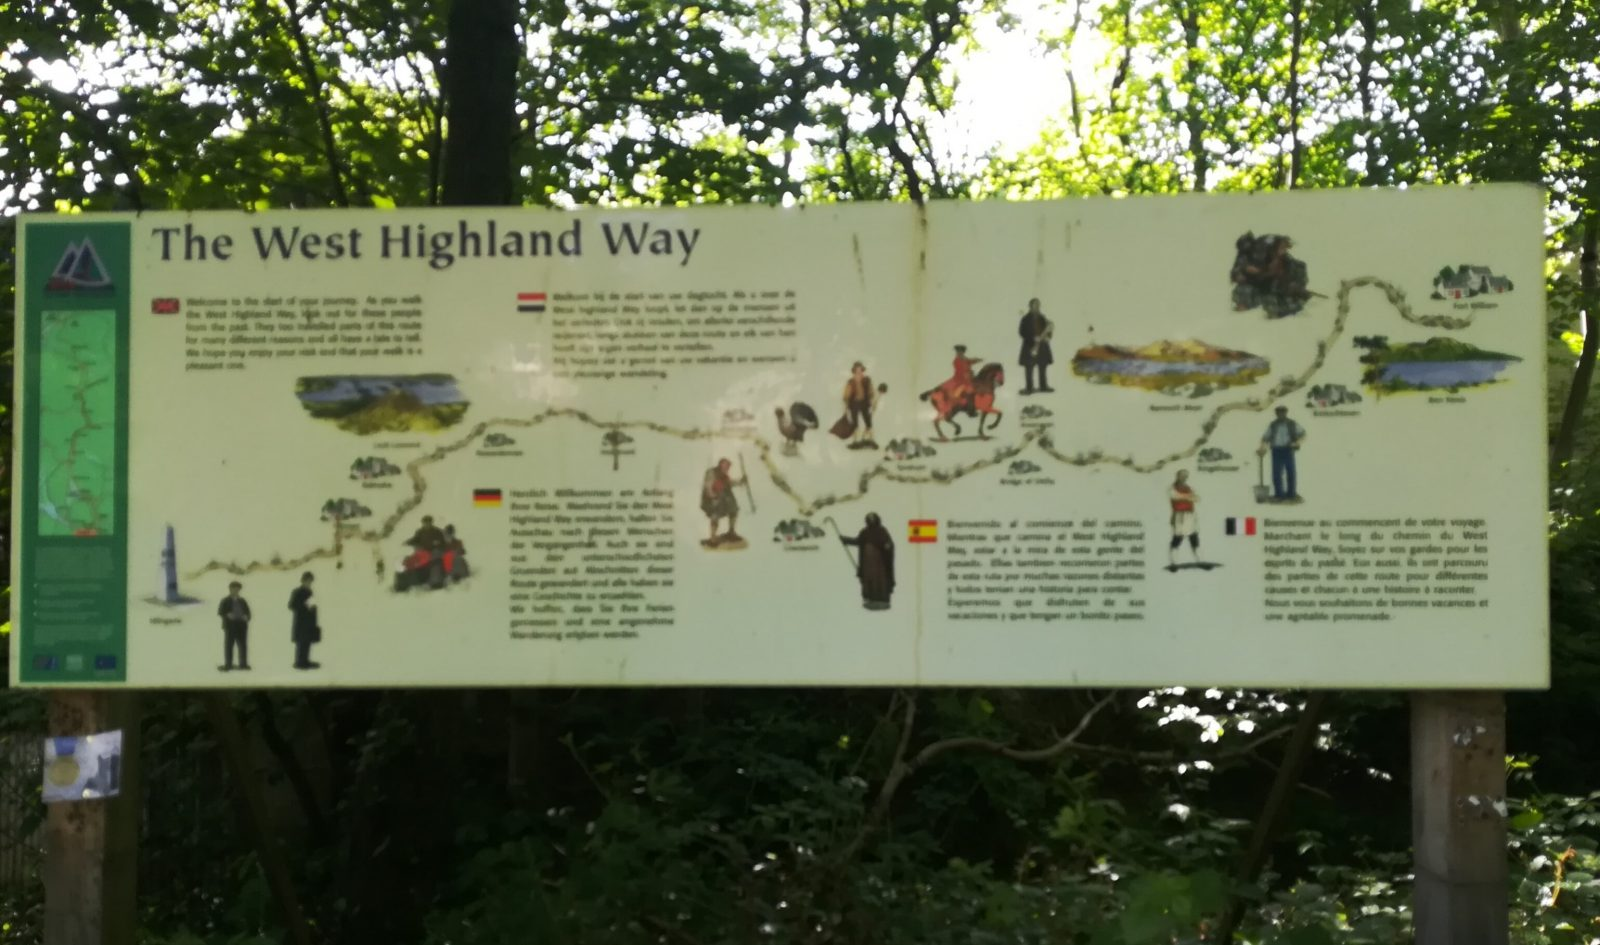 West Highland Way